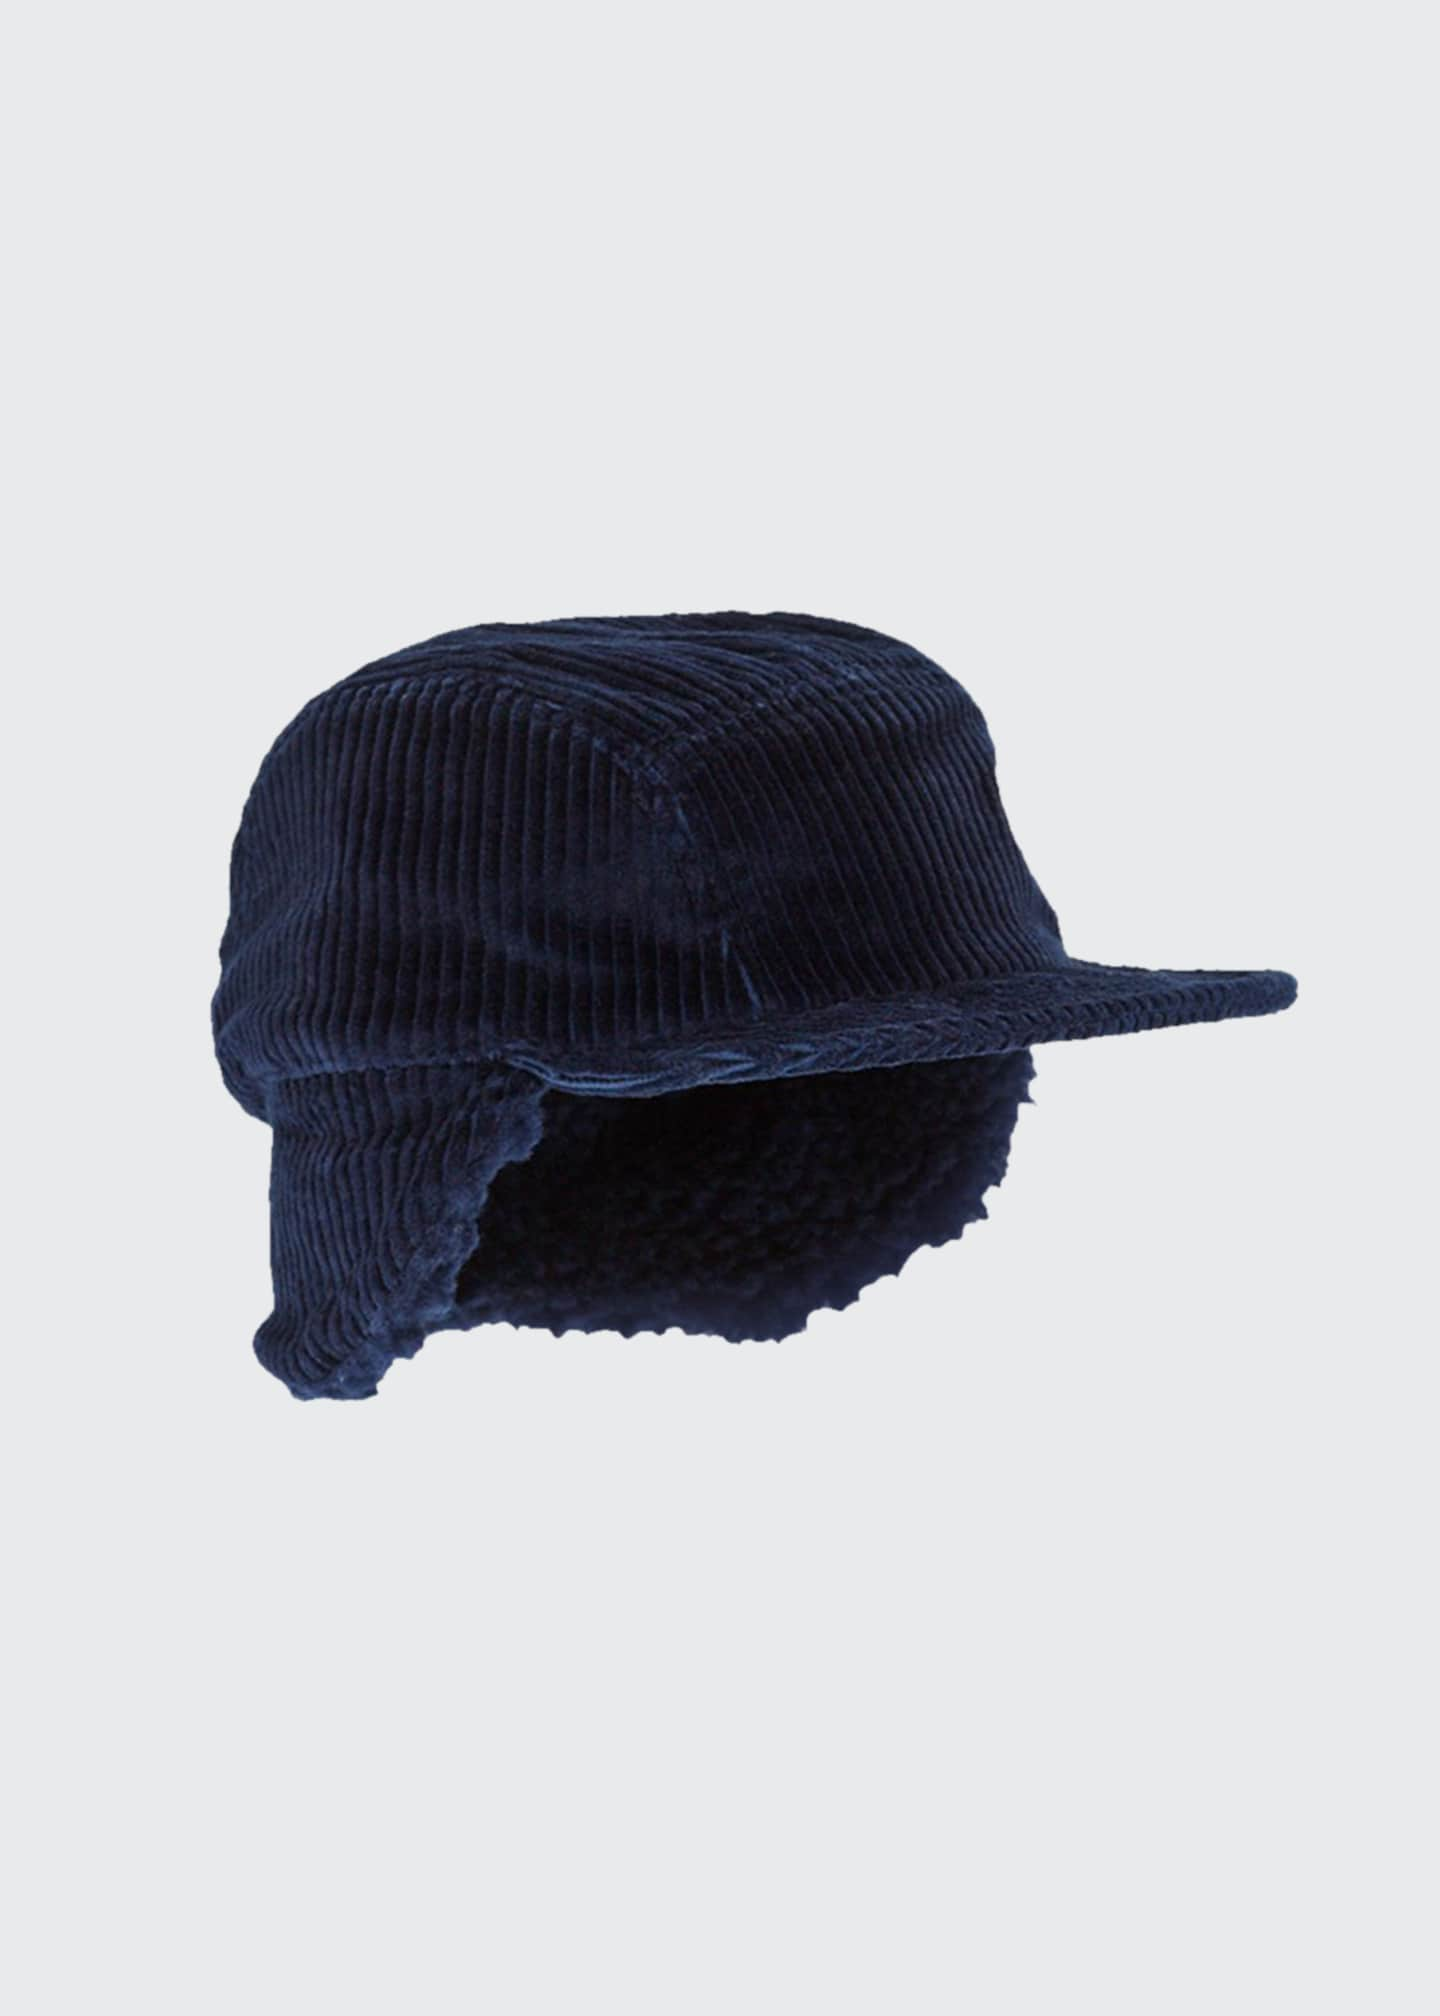 Cableami Men's Quilted Corduroy Cap